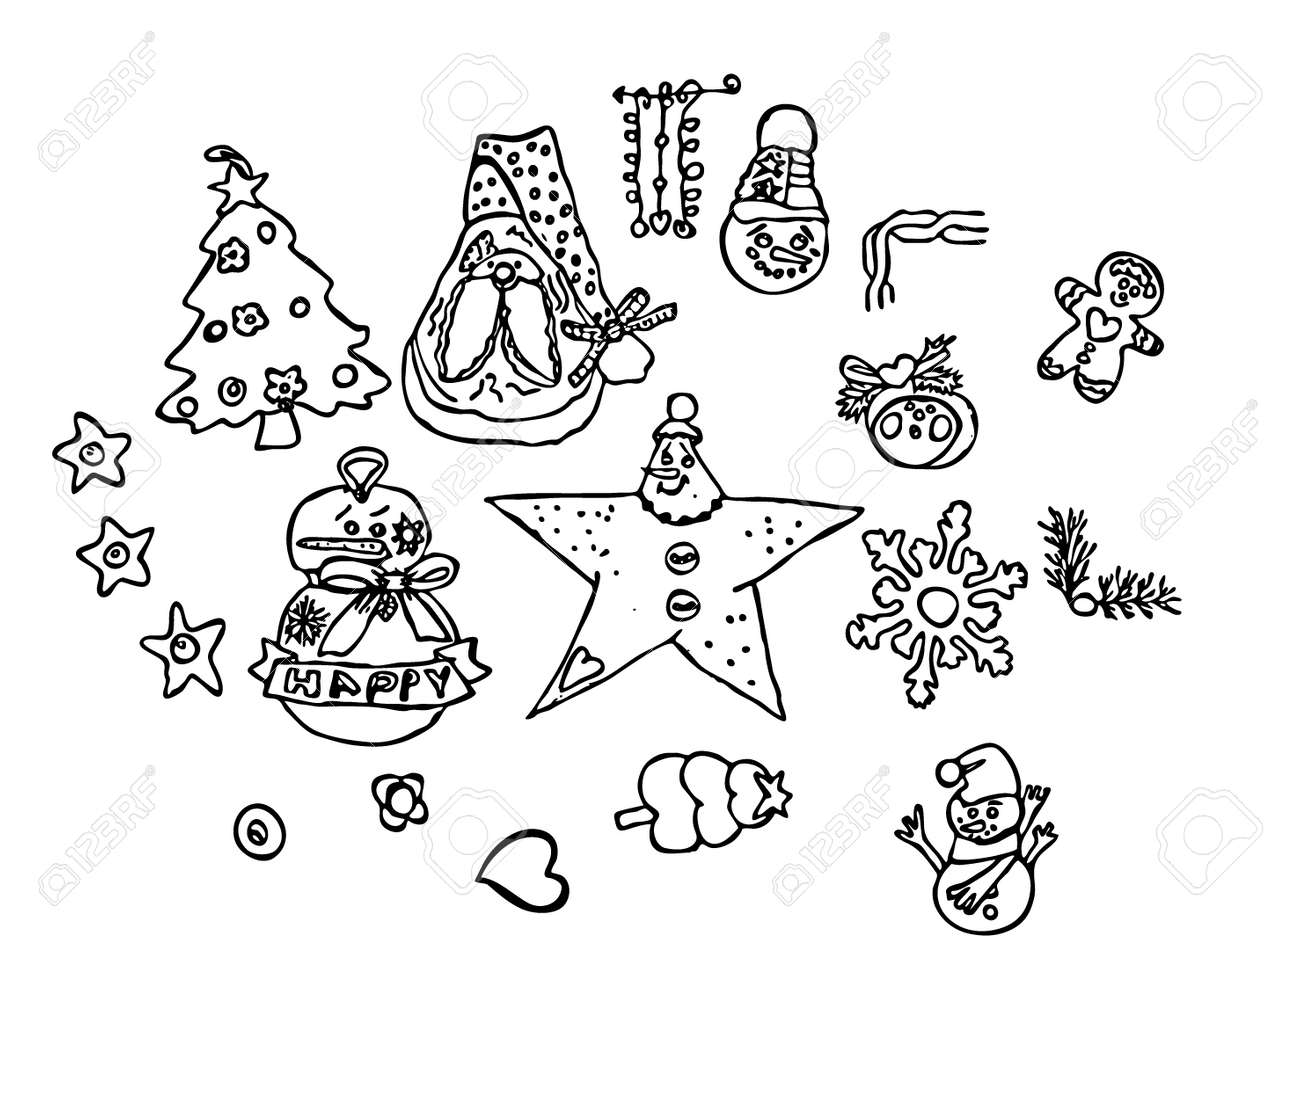 holiday drawings simple vector for christmas days happy favorite royalty free cliparts vectors and stock illustration image 106950003 123rf com